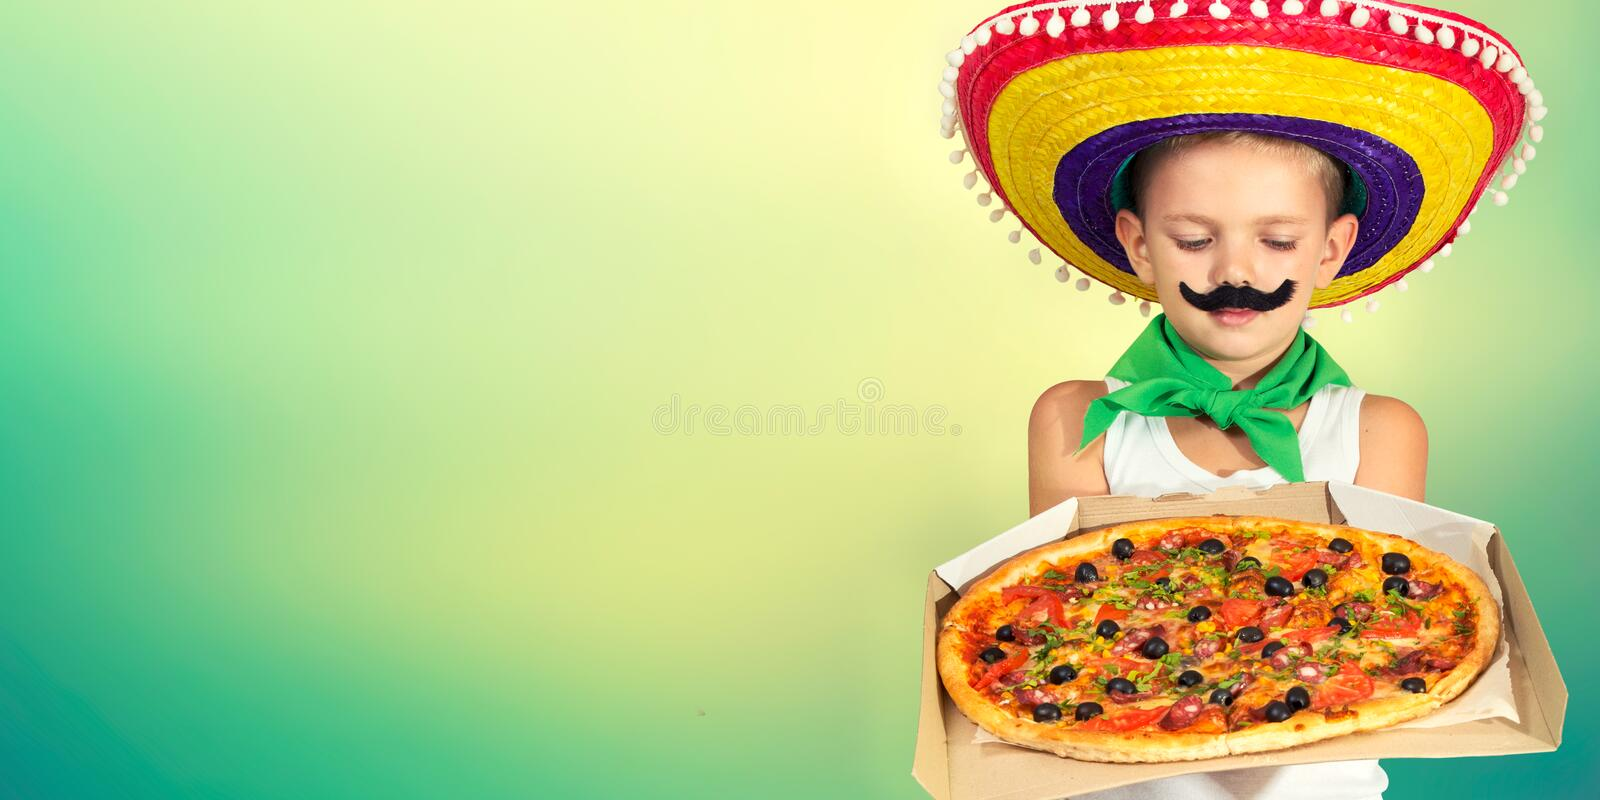 A child in a Mexican sombrero eats pizza. stock images